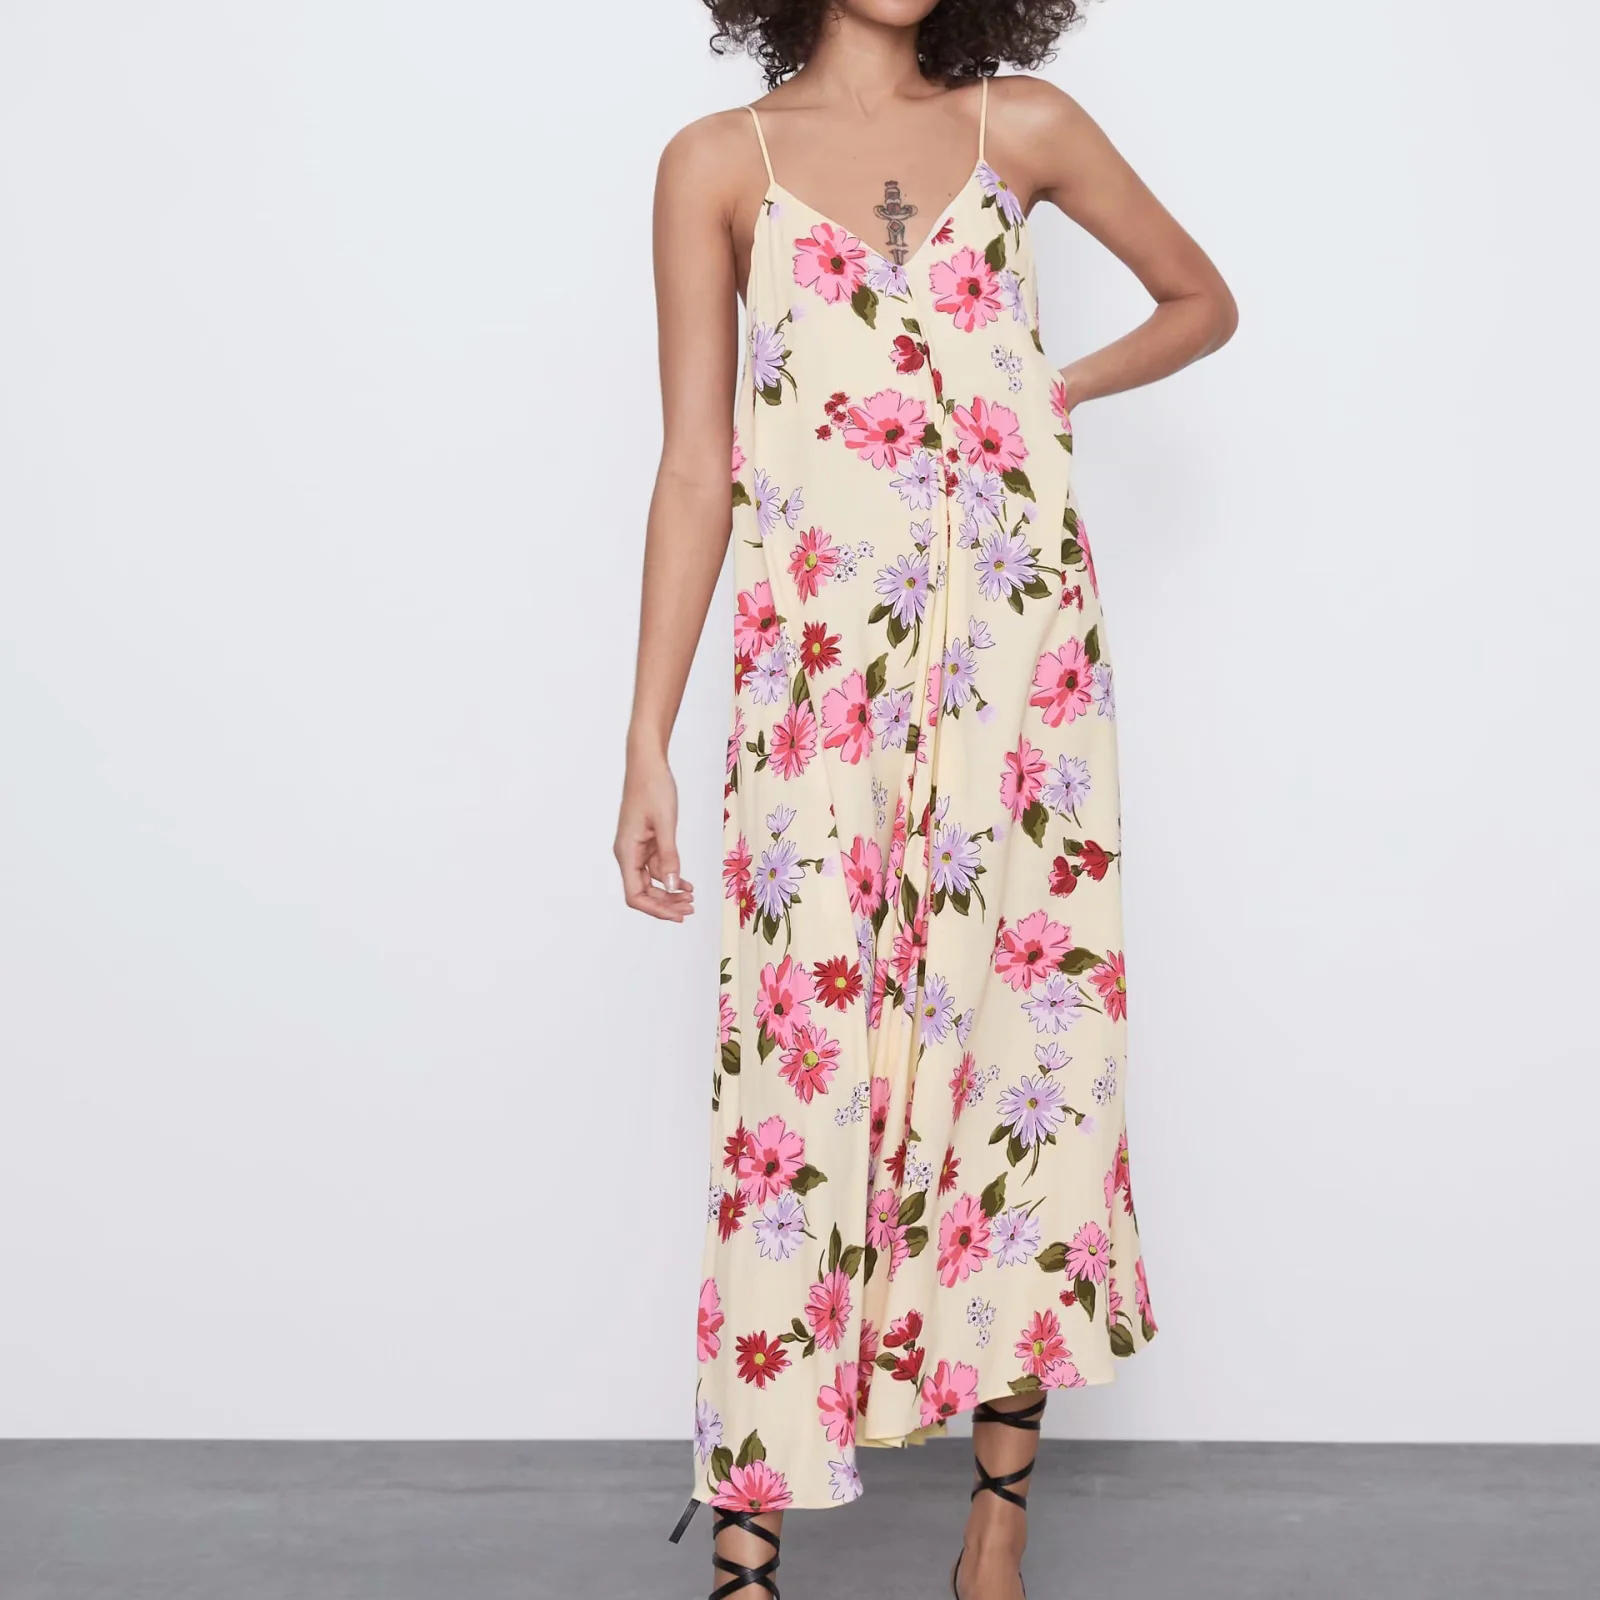 2020 NEW women summer Vanilla floral print dress Flowing V-neck thin straps casual fashion female woman dresses